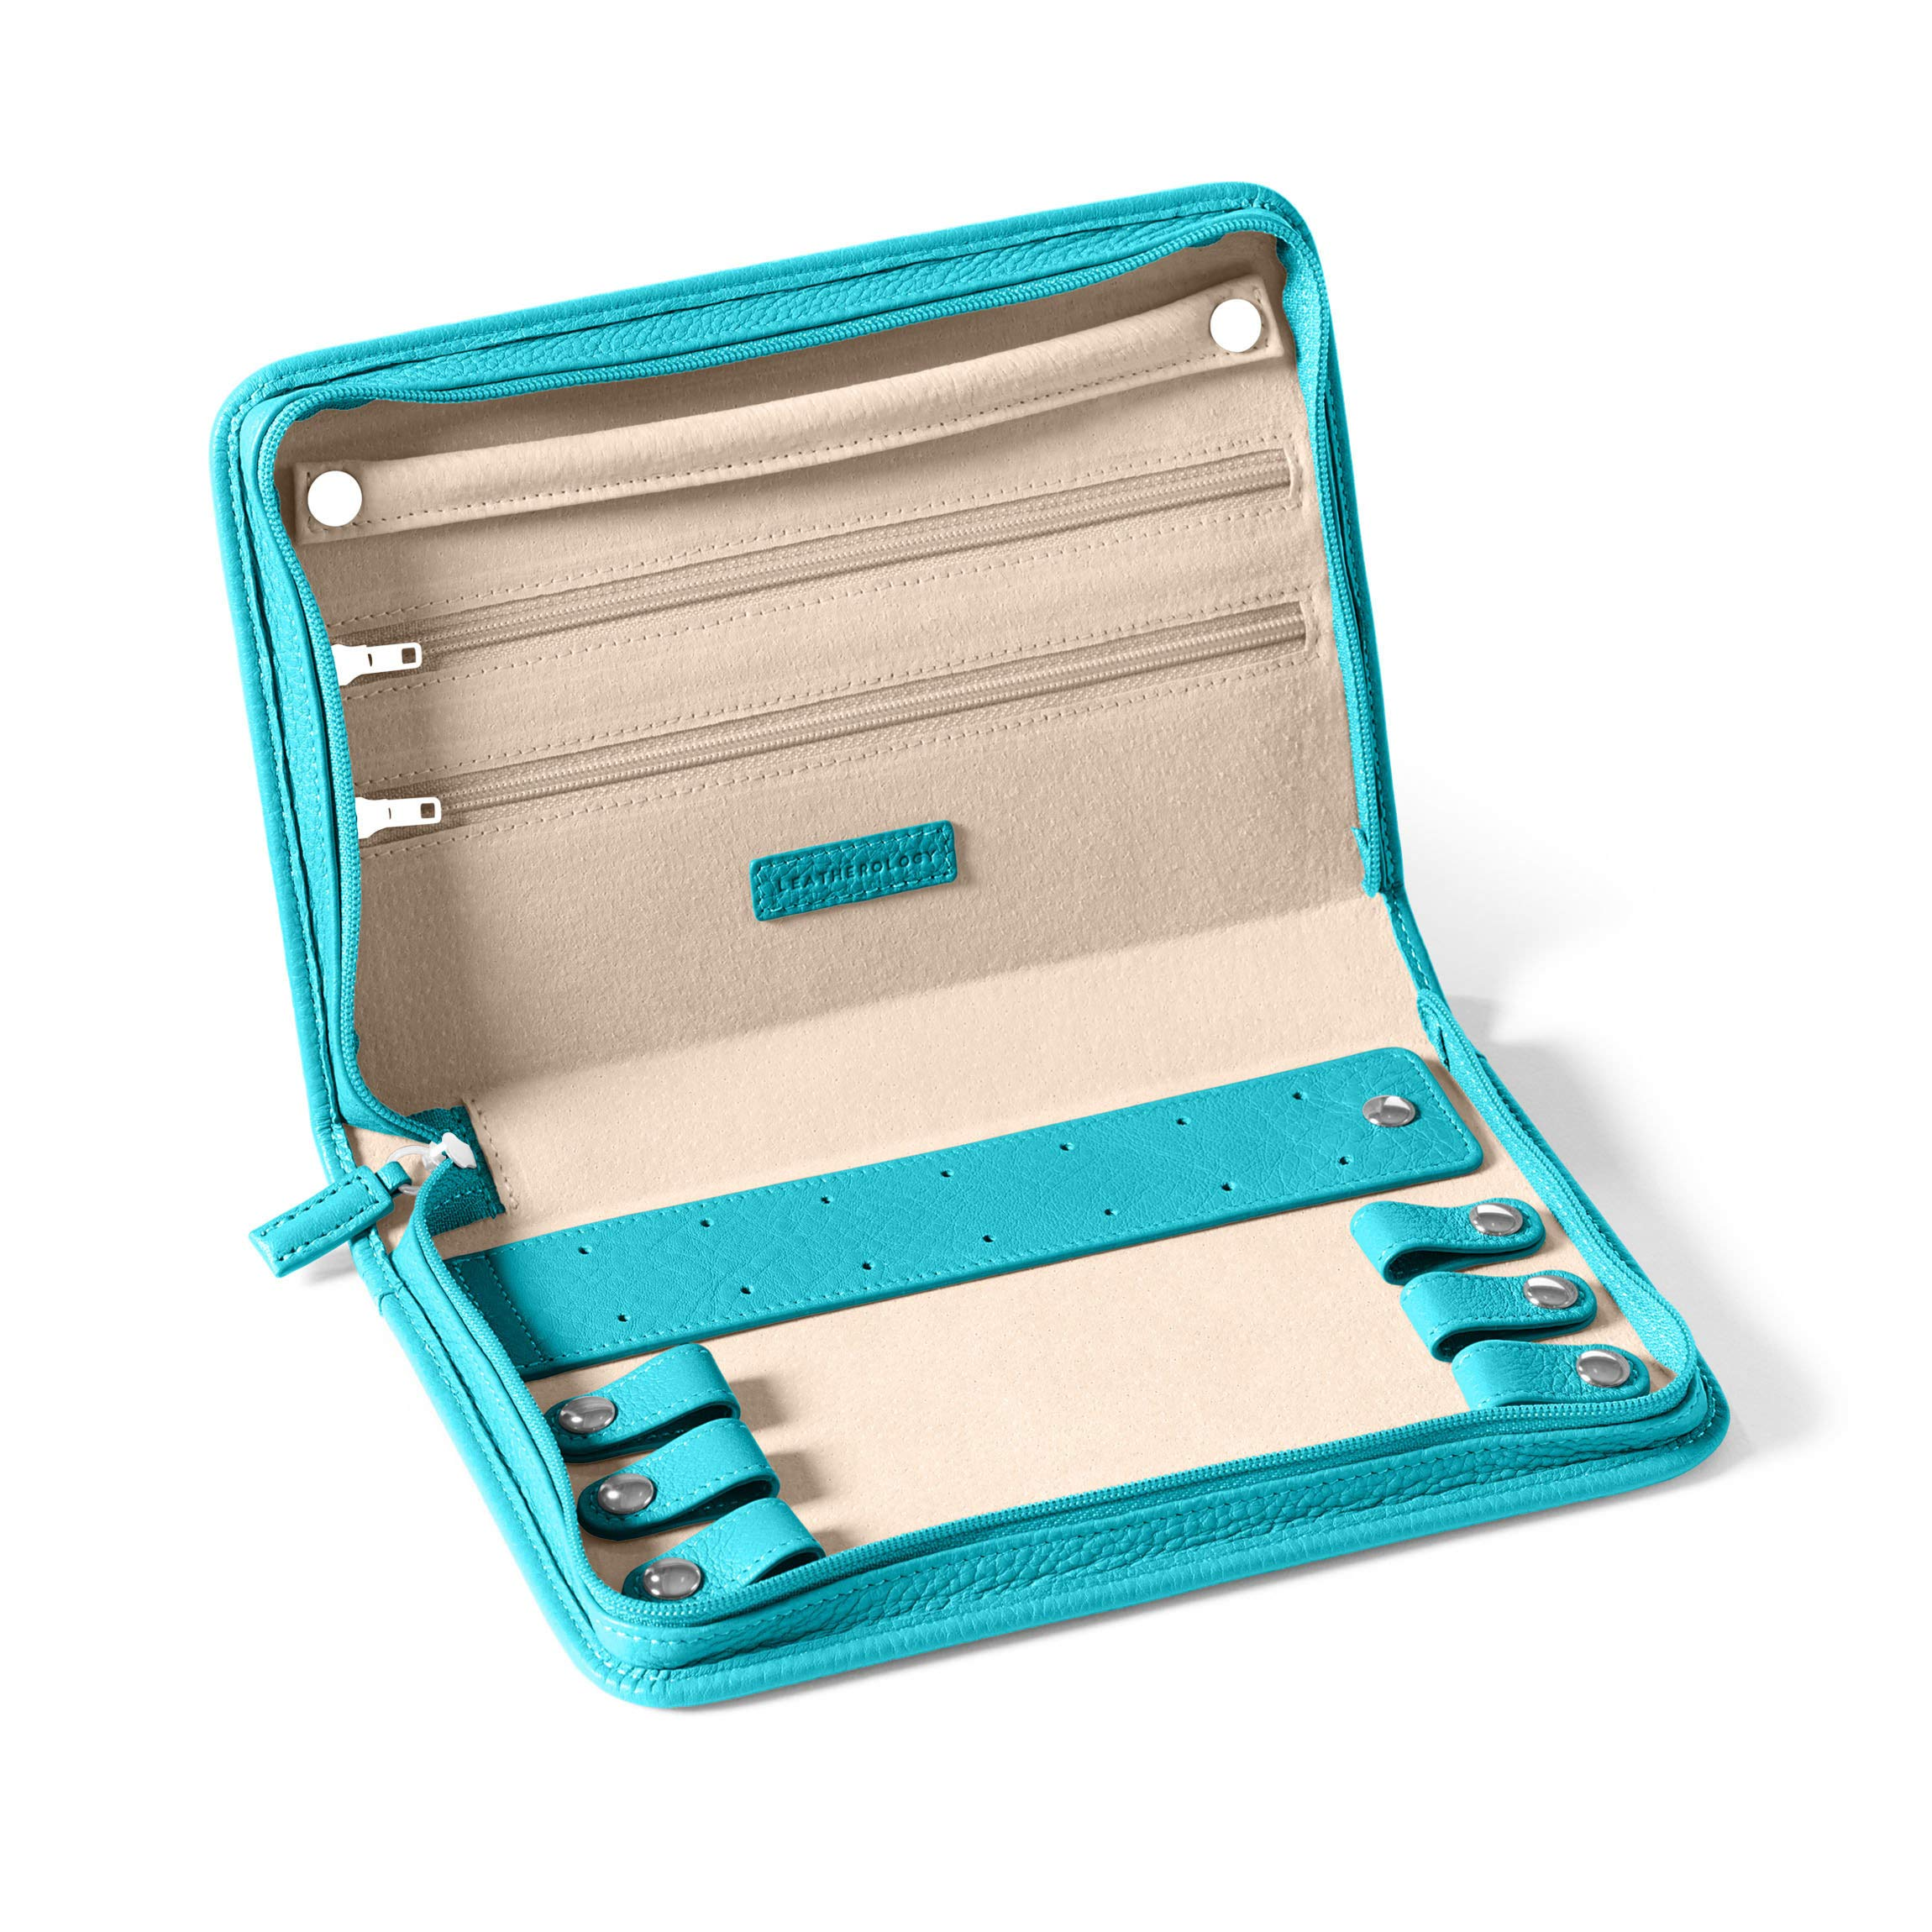 Large Jewelry Case - Full Grain Leather - Teal (blue)